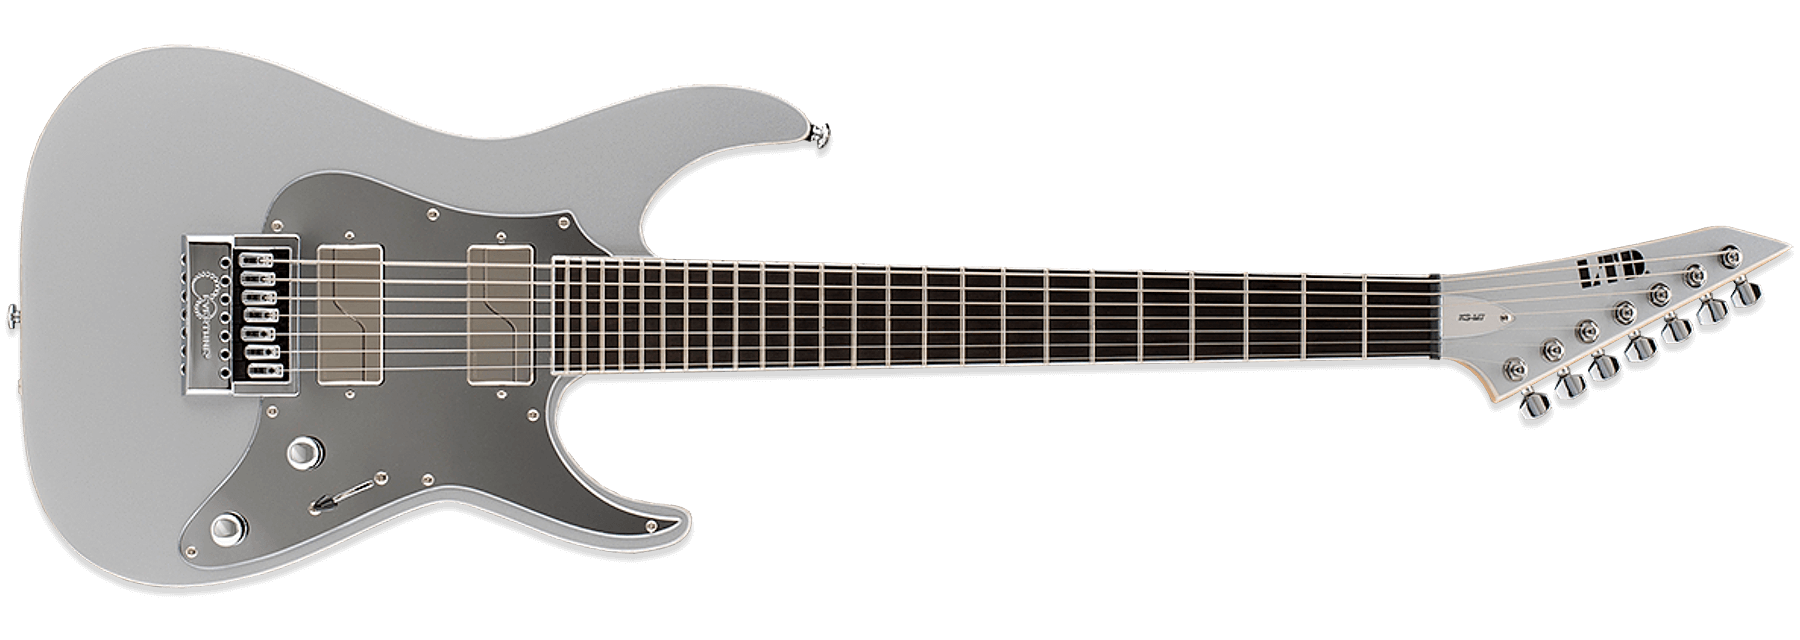 ESP LTD Ken Susi KS-M7 ET Metallic Silver